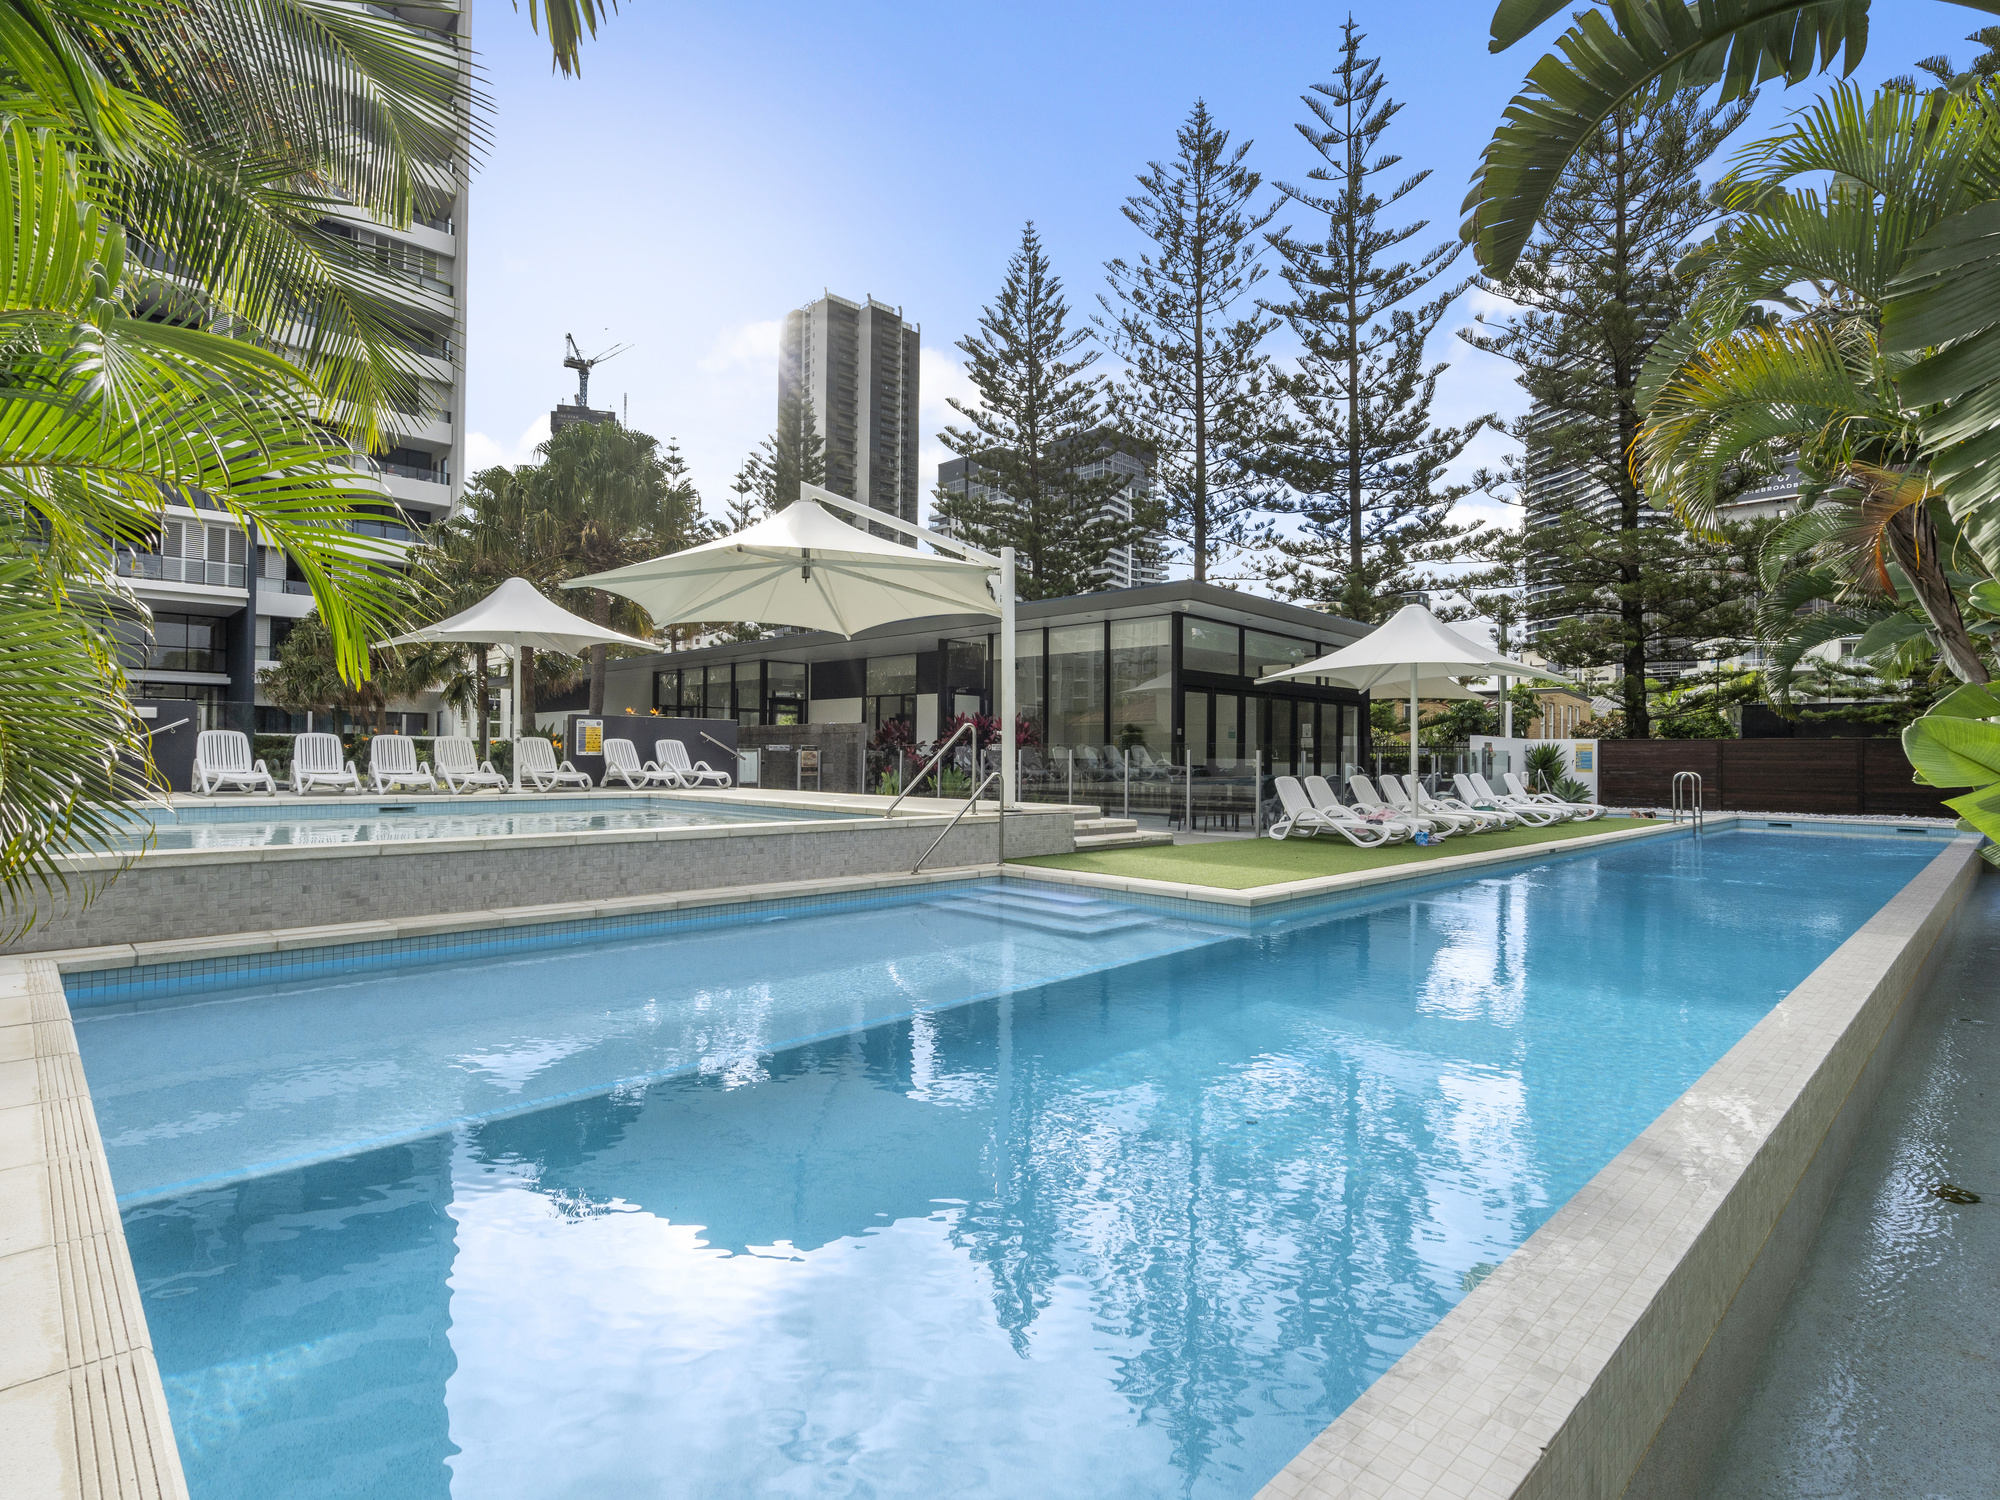 Real Estate | Gold Coast | Chevron Realty | 014 Open2view Id685729 301 14 George Avenue